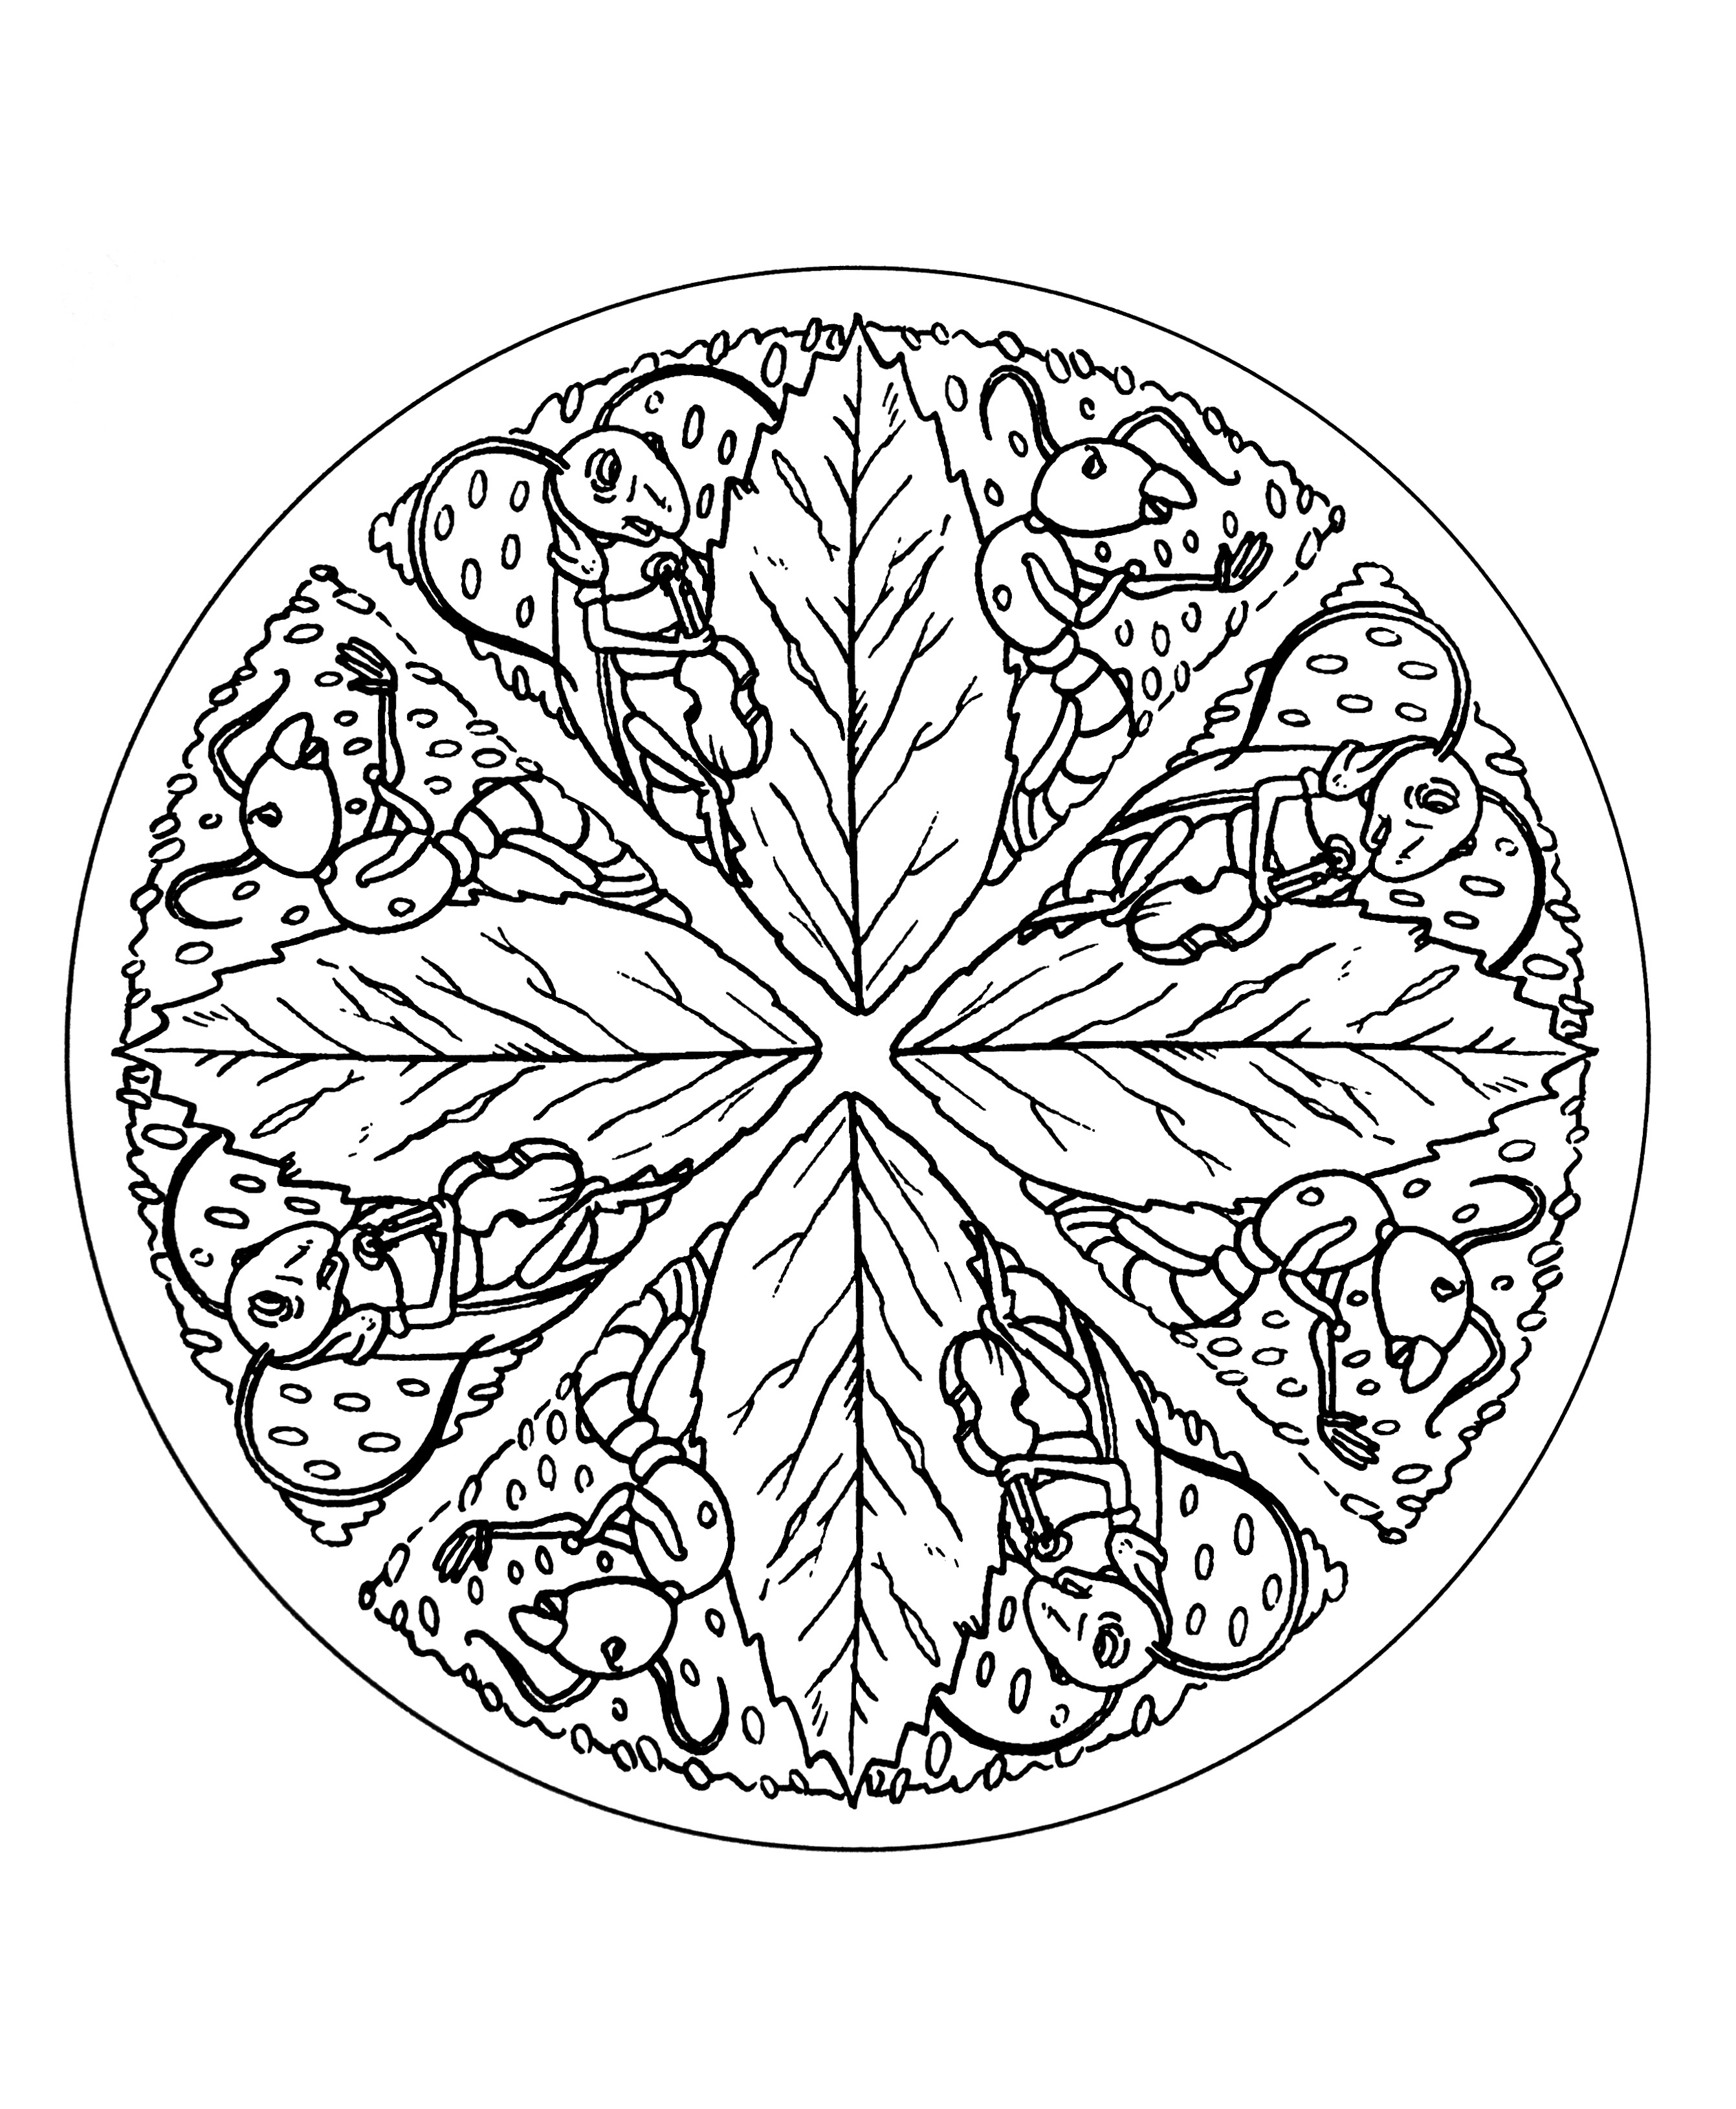 Simple mandala 20 - M&alas Coloring pages for kids to ...